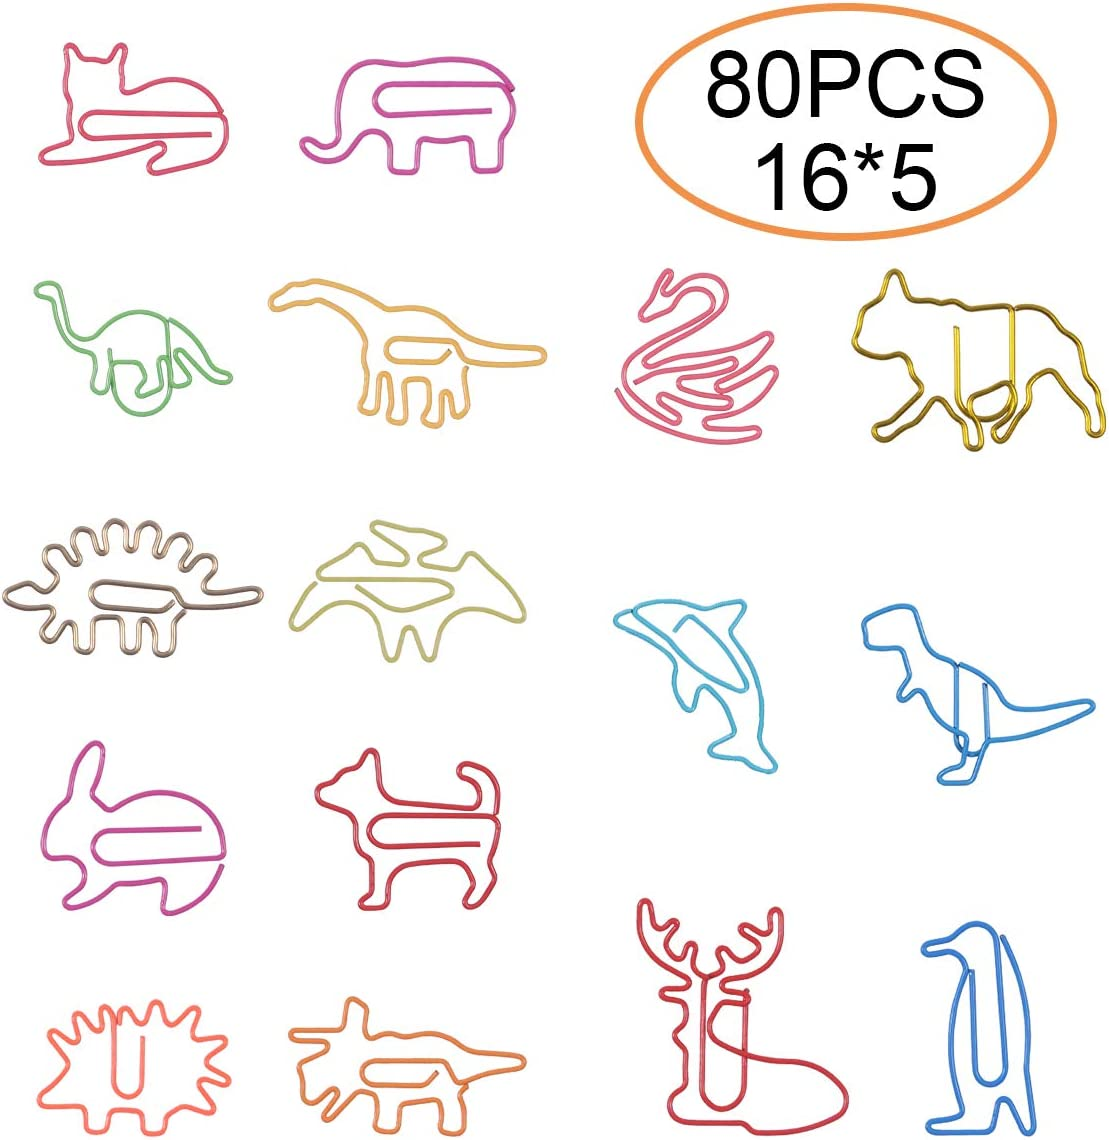 Paper Clips for Kids Animal Shaped Paperclip Fun Paper Clips Assorted Colors Paperclip Coated Paper Clips Bookmark Clips Office Supplies for Document Organizing 80 Counts Cute Paper Clips for Students